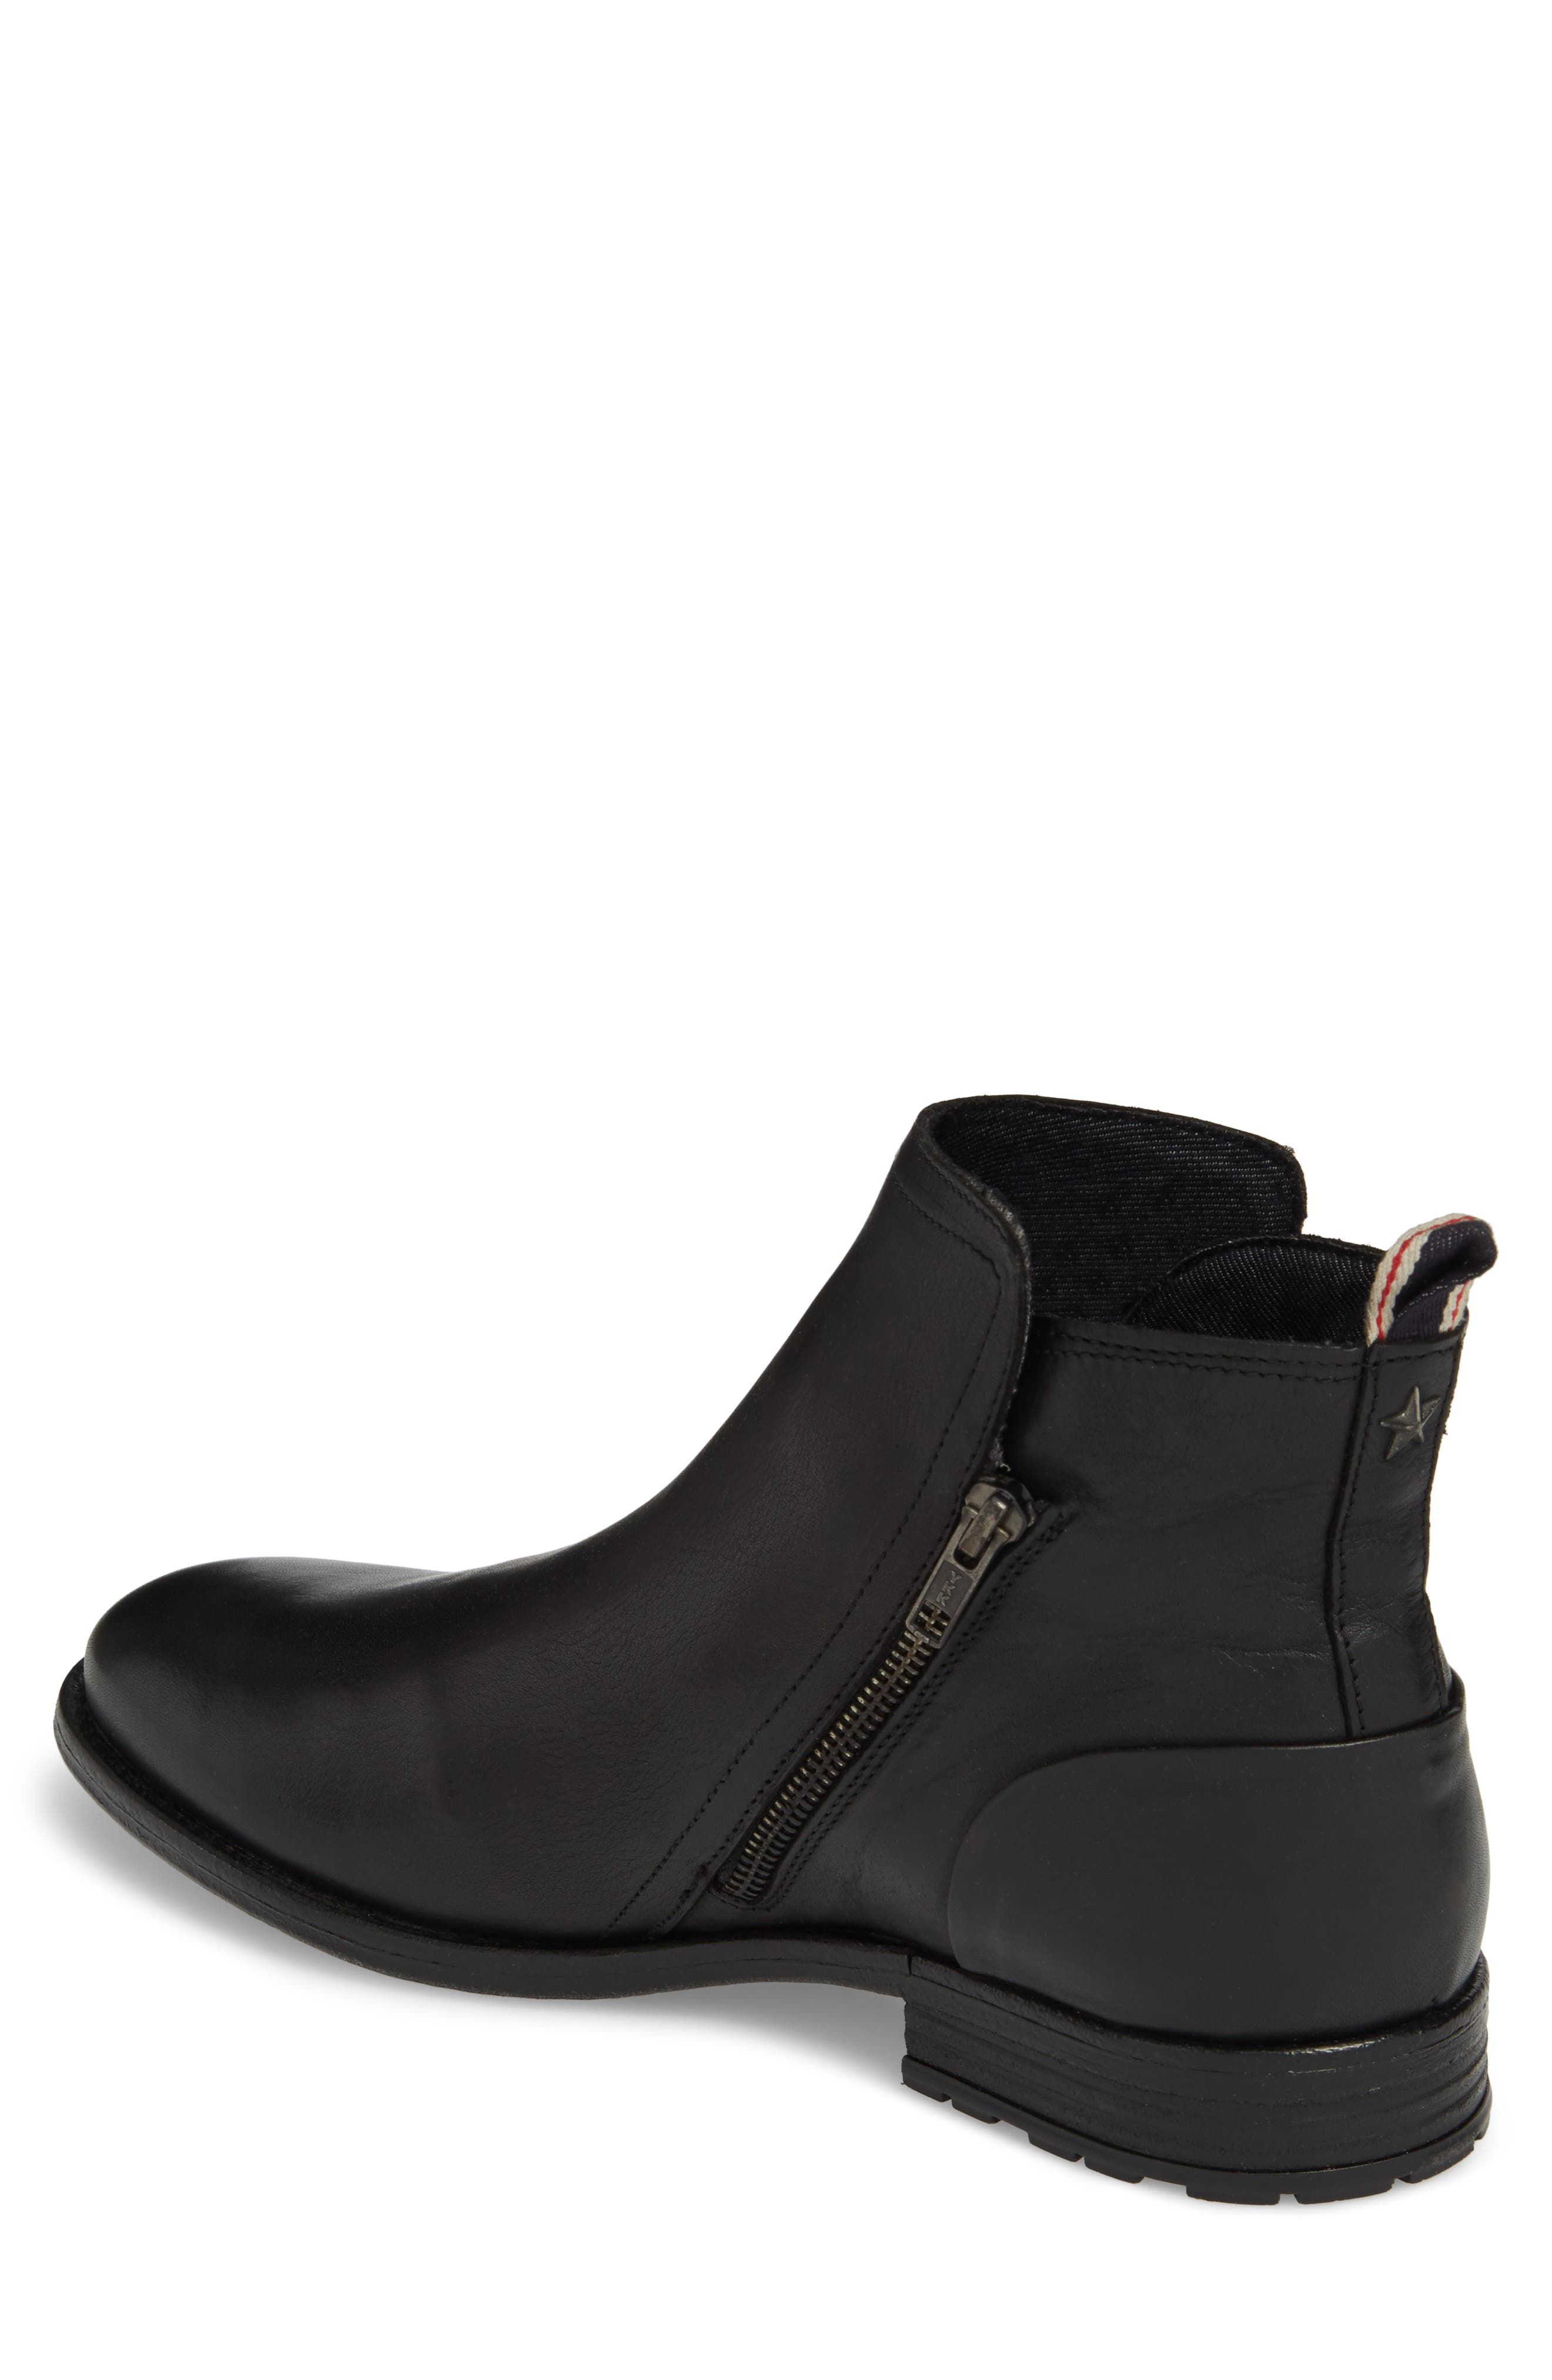 Gerone Zip Boot,                             Alternate thumbnail 2, color,                             Black Leather Fabric